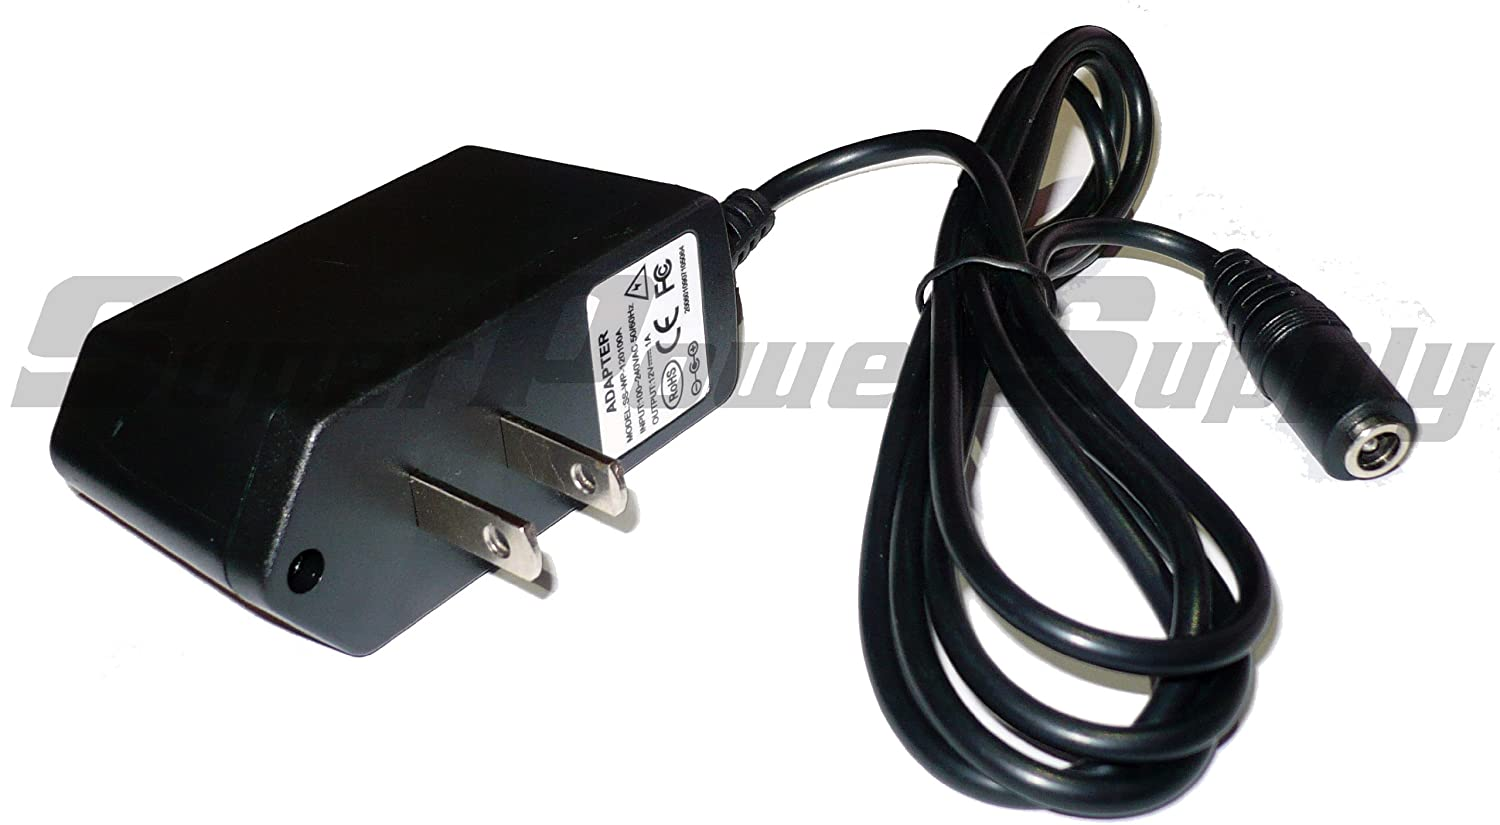 Super Power Supply AC/DC Adapter Charger Cord 12V 1A (1000mA) 5.5mm x 2.1mm Female / 5.5x2.1mm Receptacle Wall Plug at Sears.com